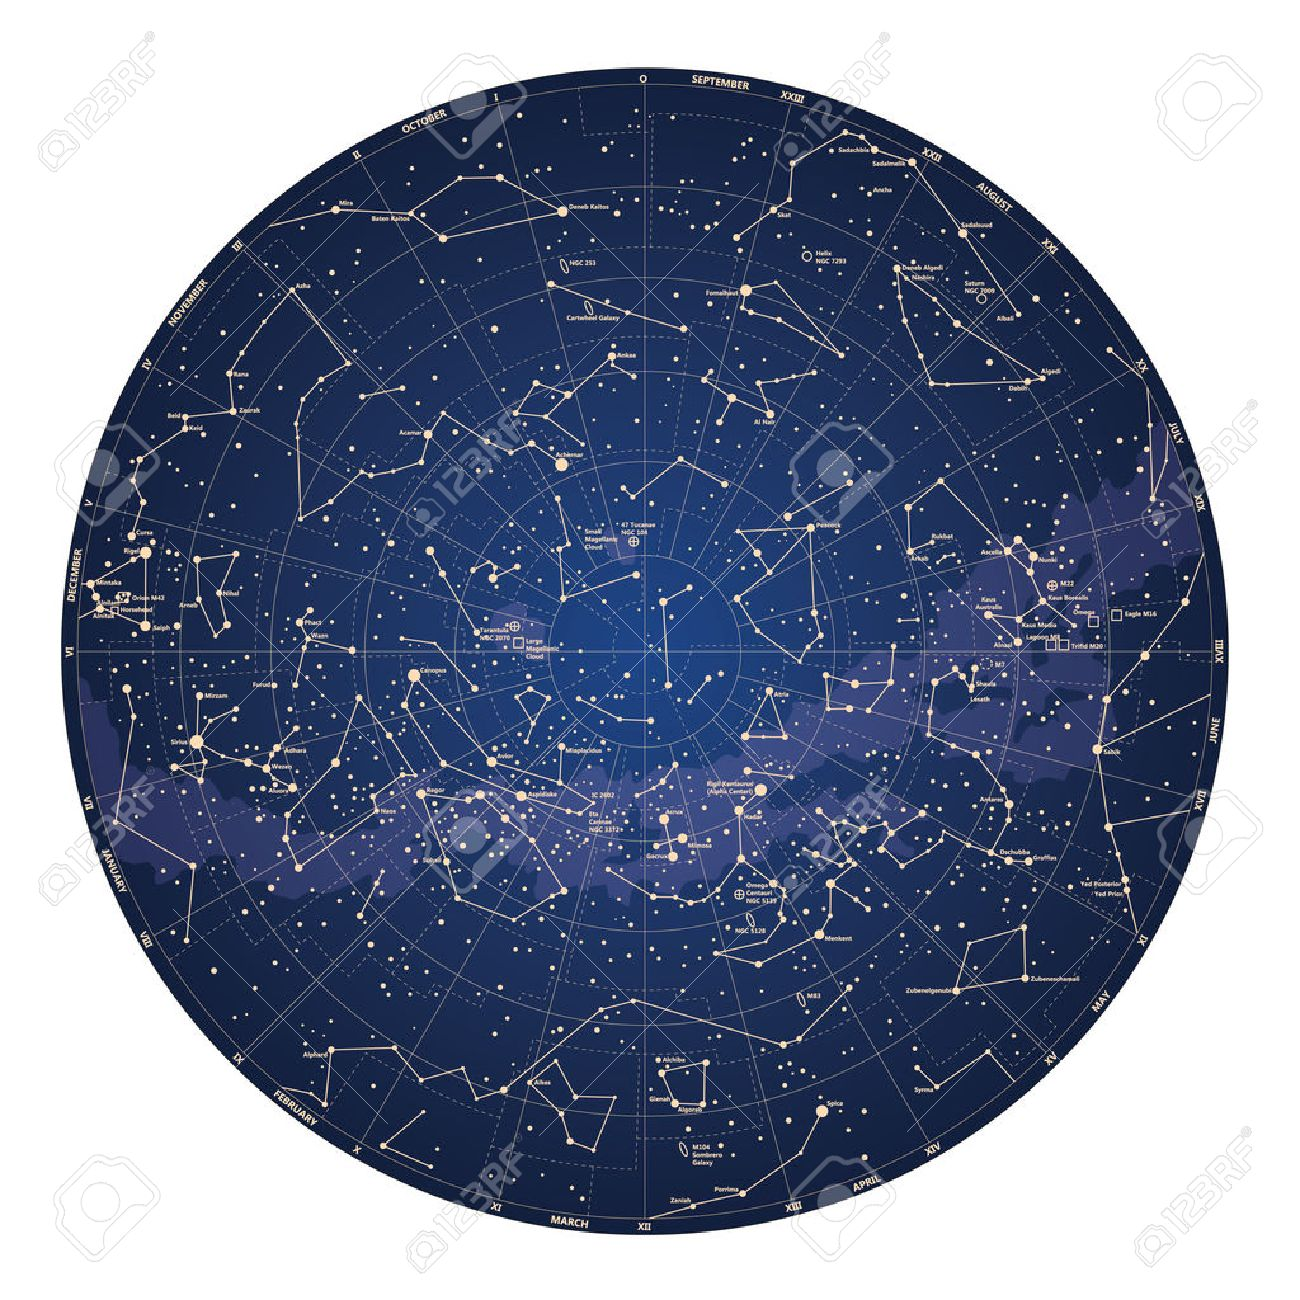 High detailed sky map of Southern hemisphere with names of stars and constellations colored vector - 29384954